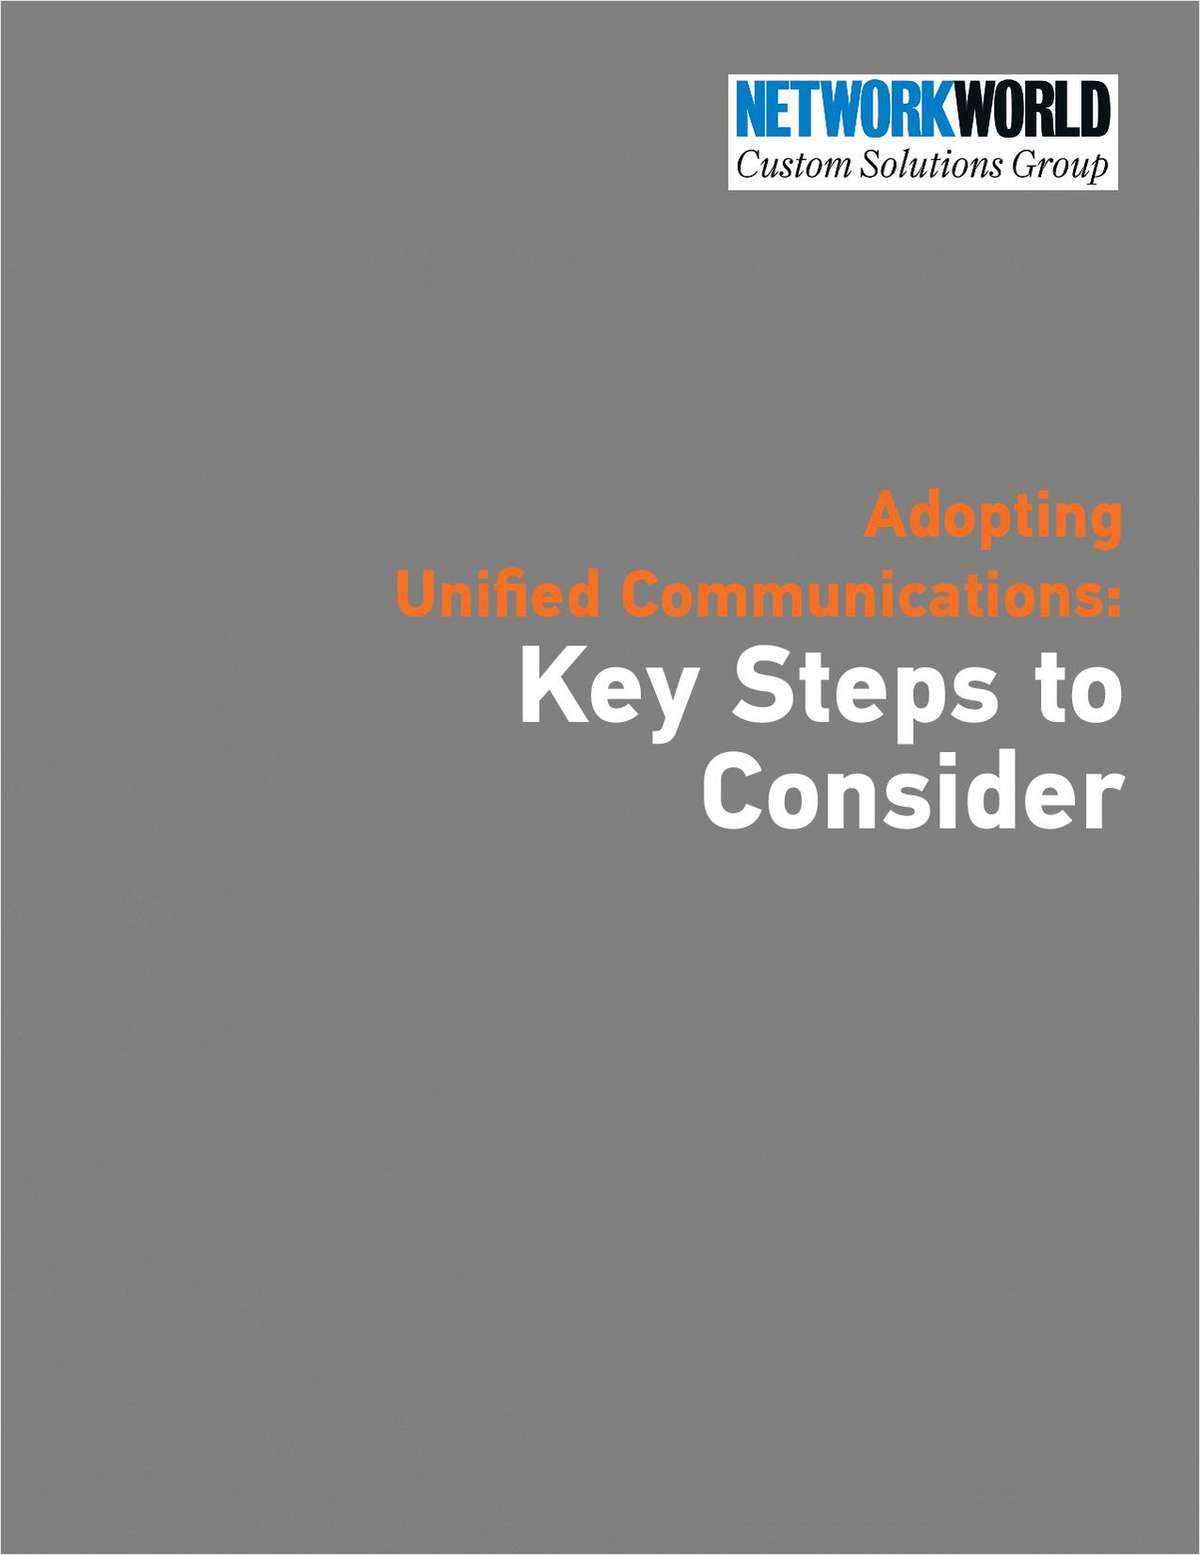 Adopting Unified Communications: Key Steps to Consider